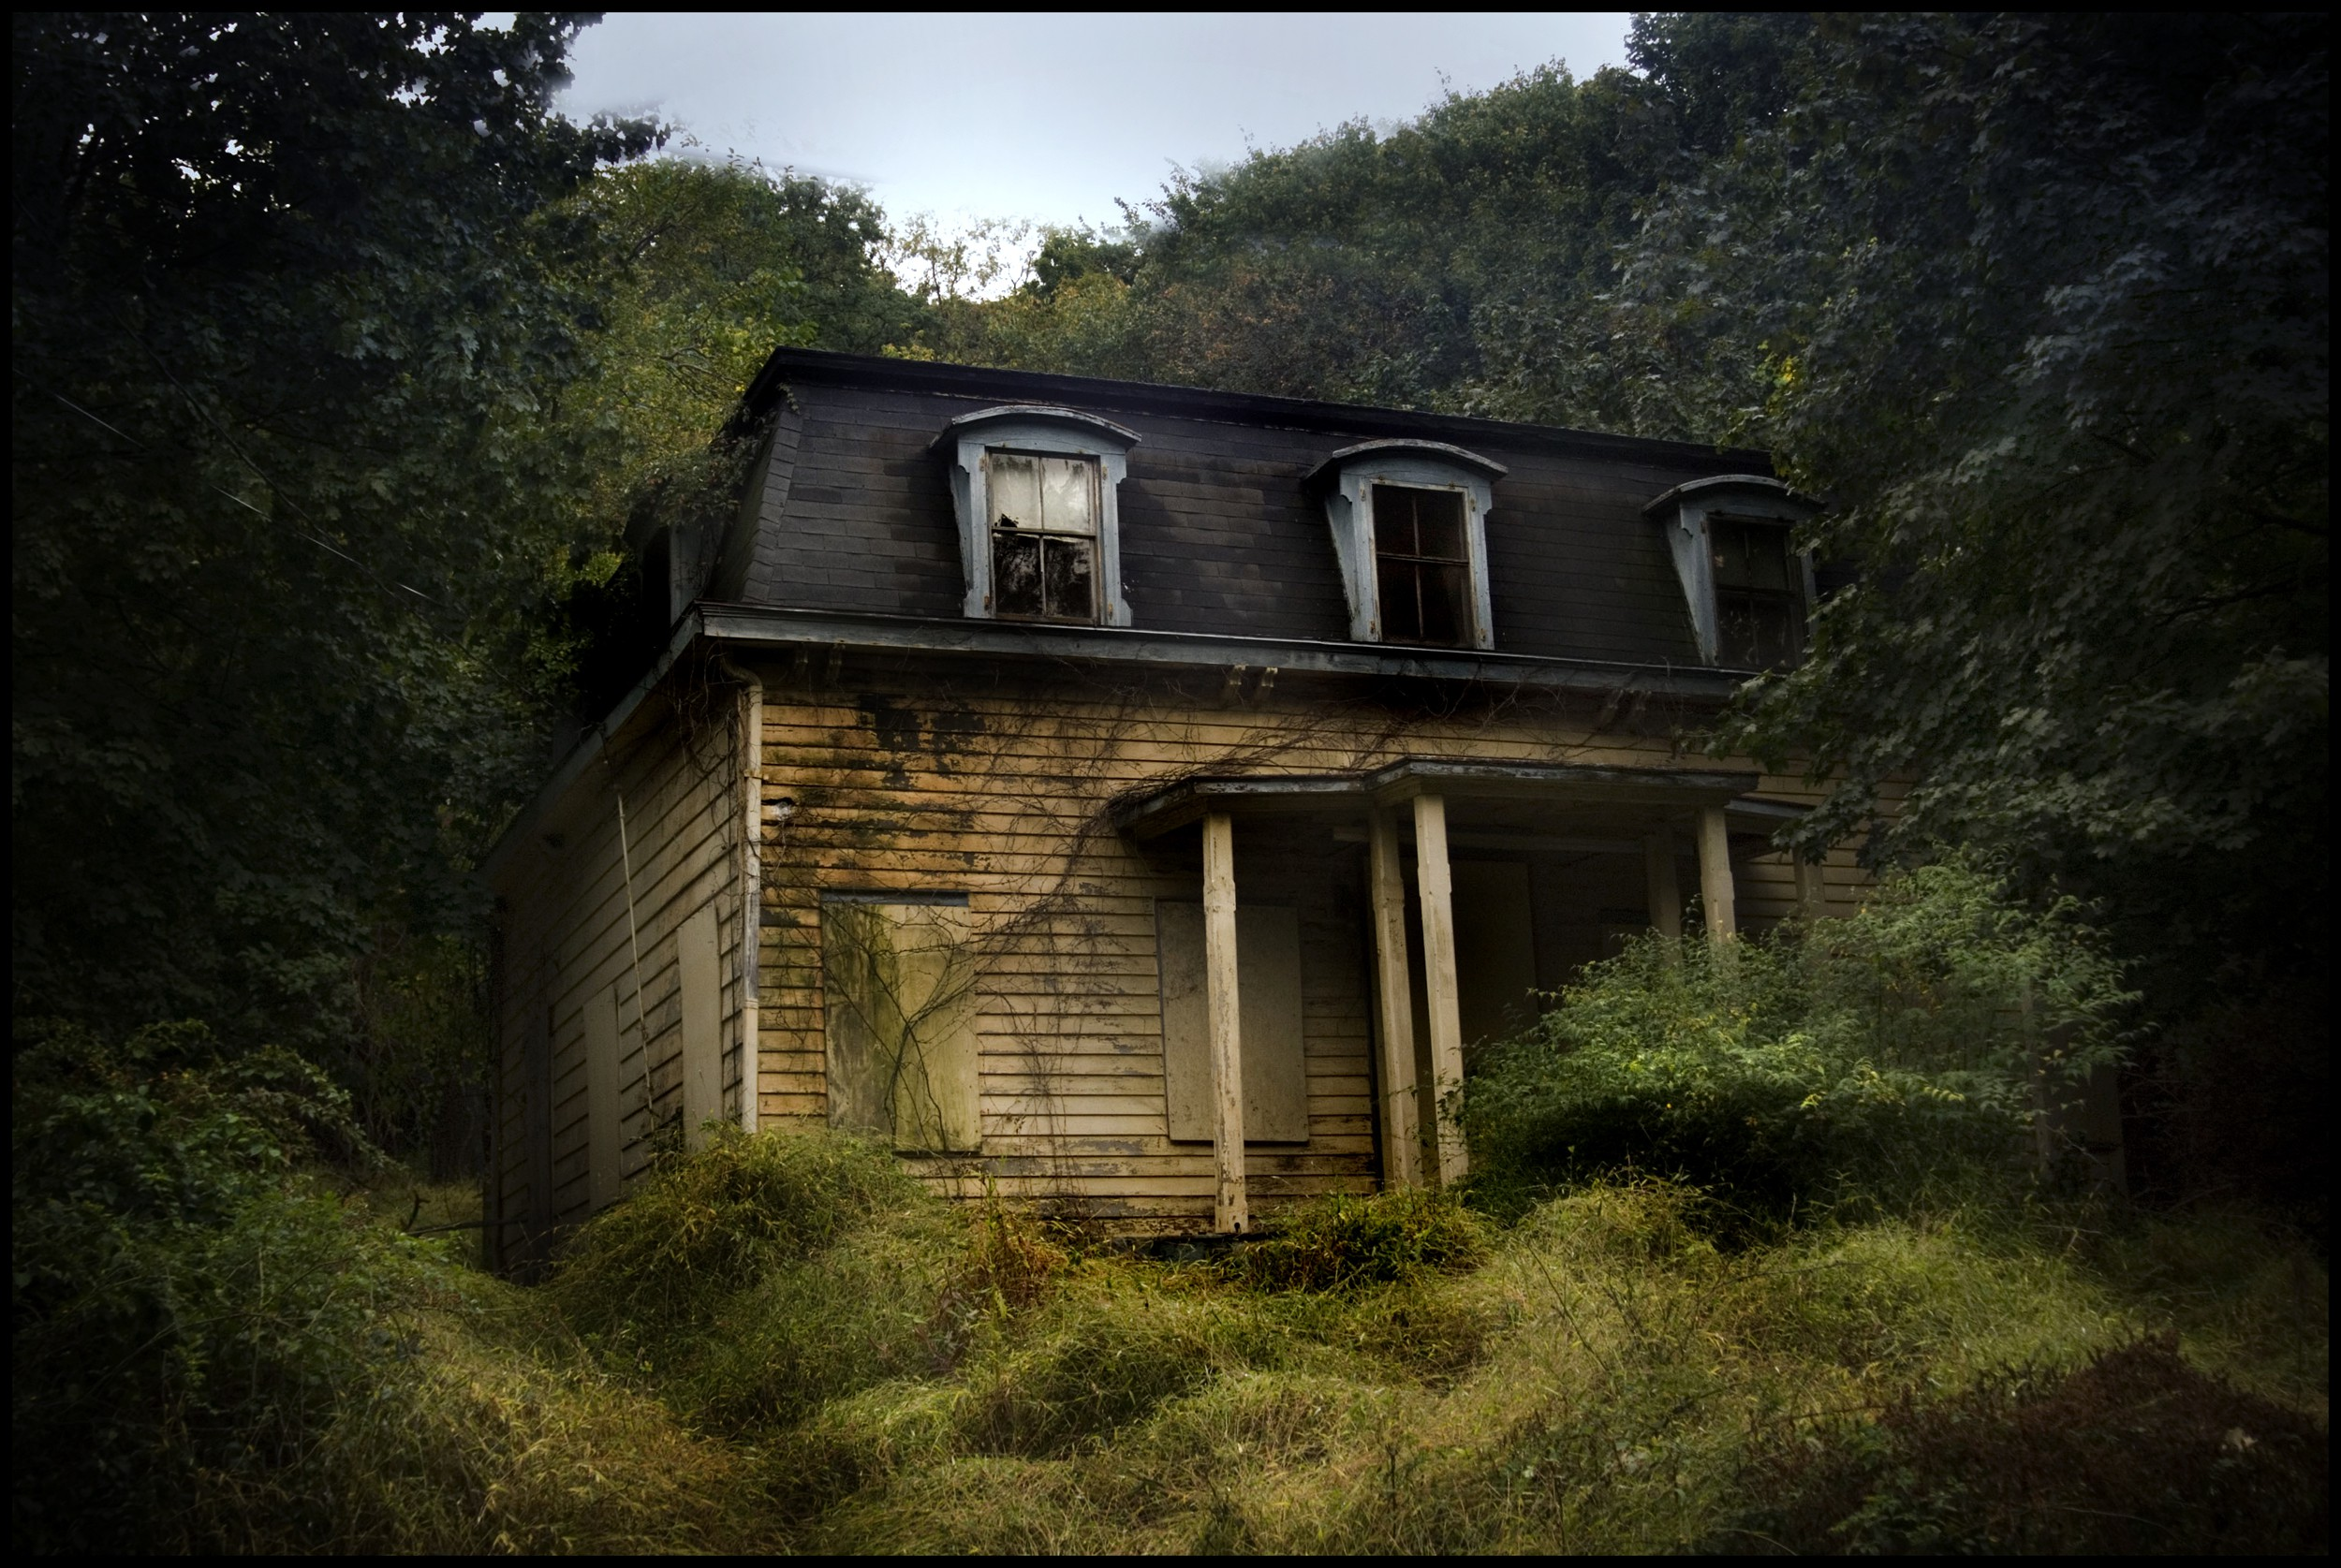 Haunted House Full HD WideScreen black,green,white 2500x1675 Desktop and Mobile Wallpapers